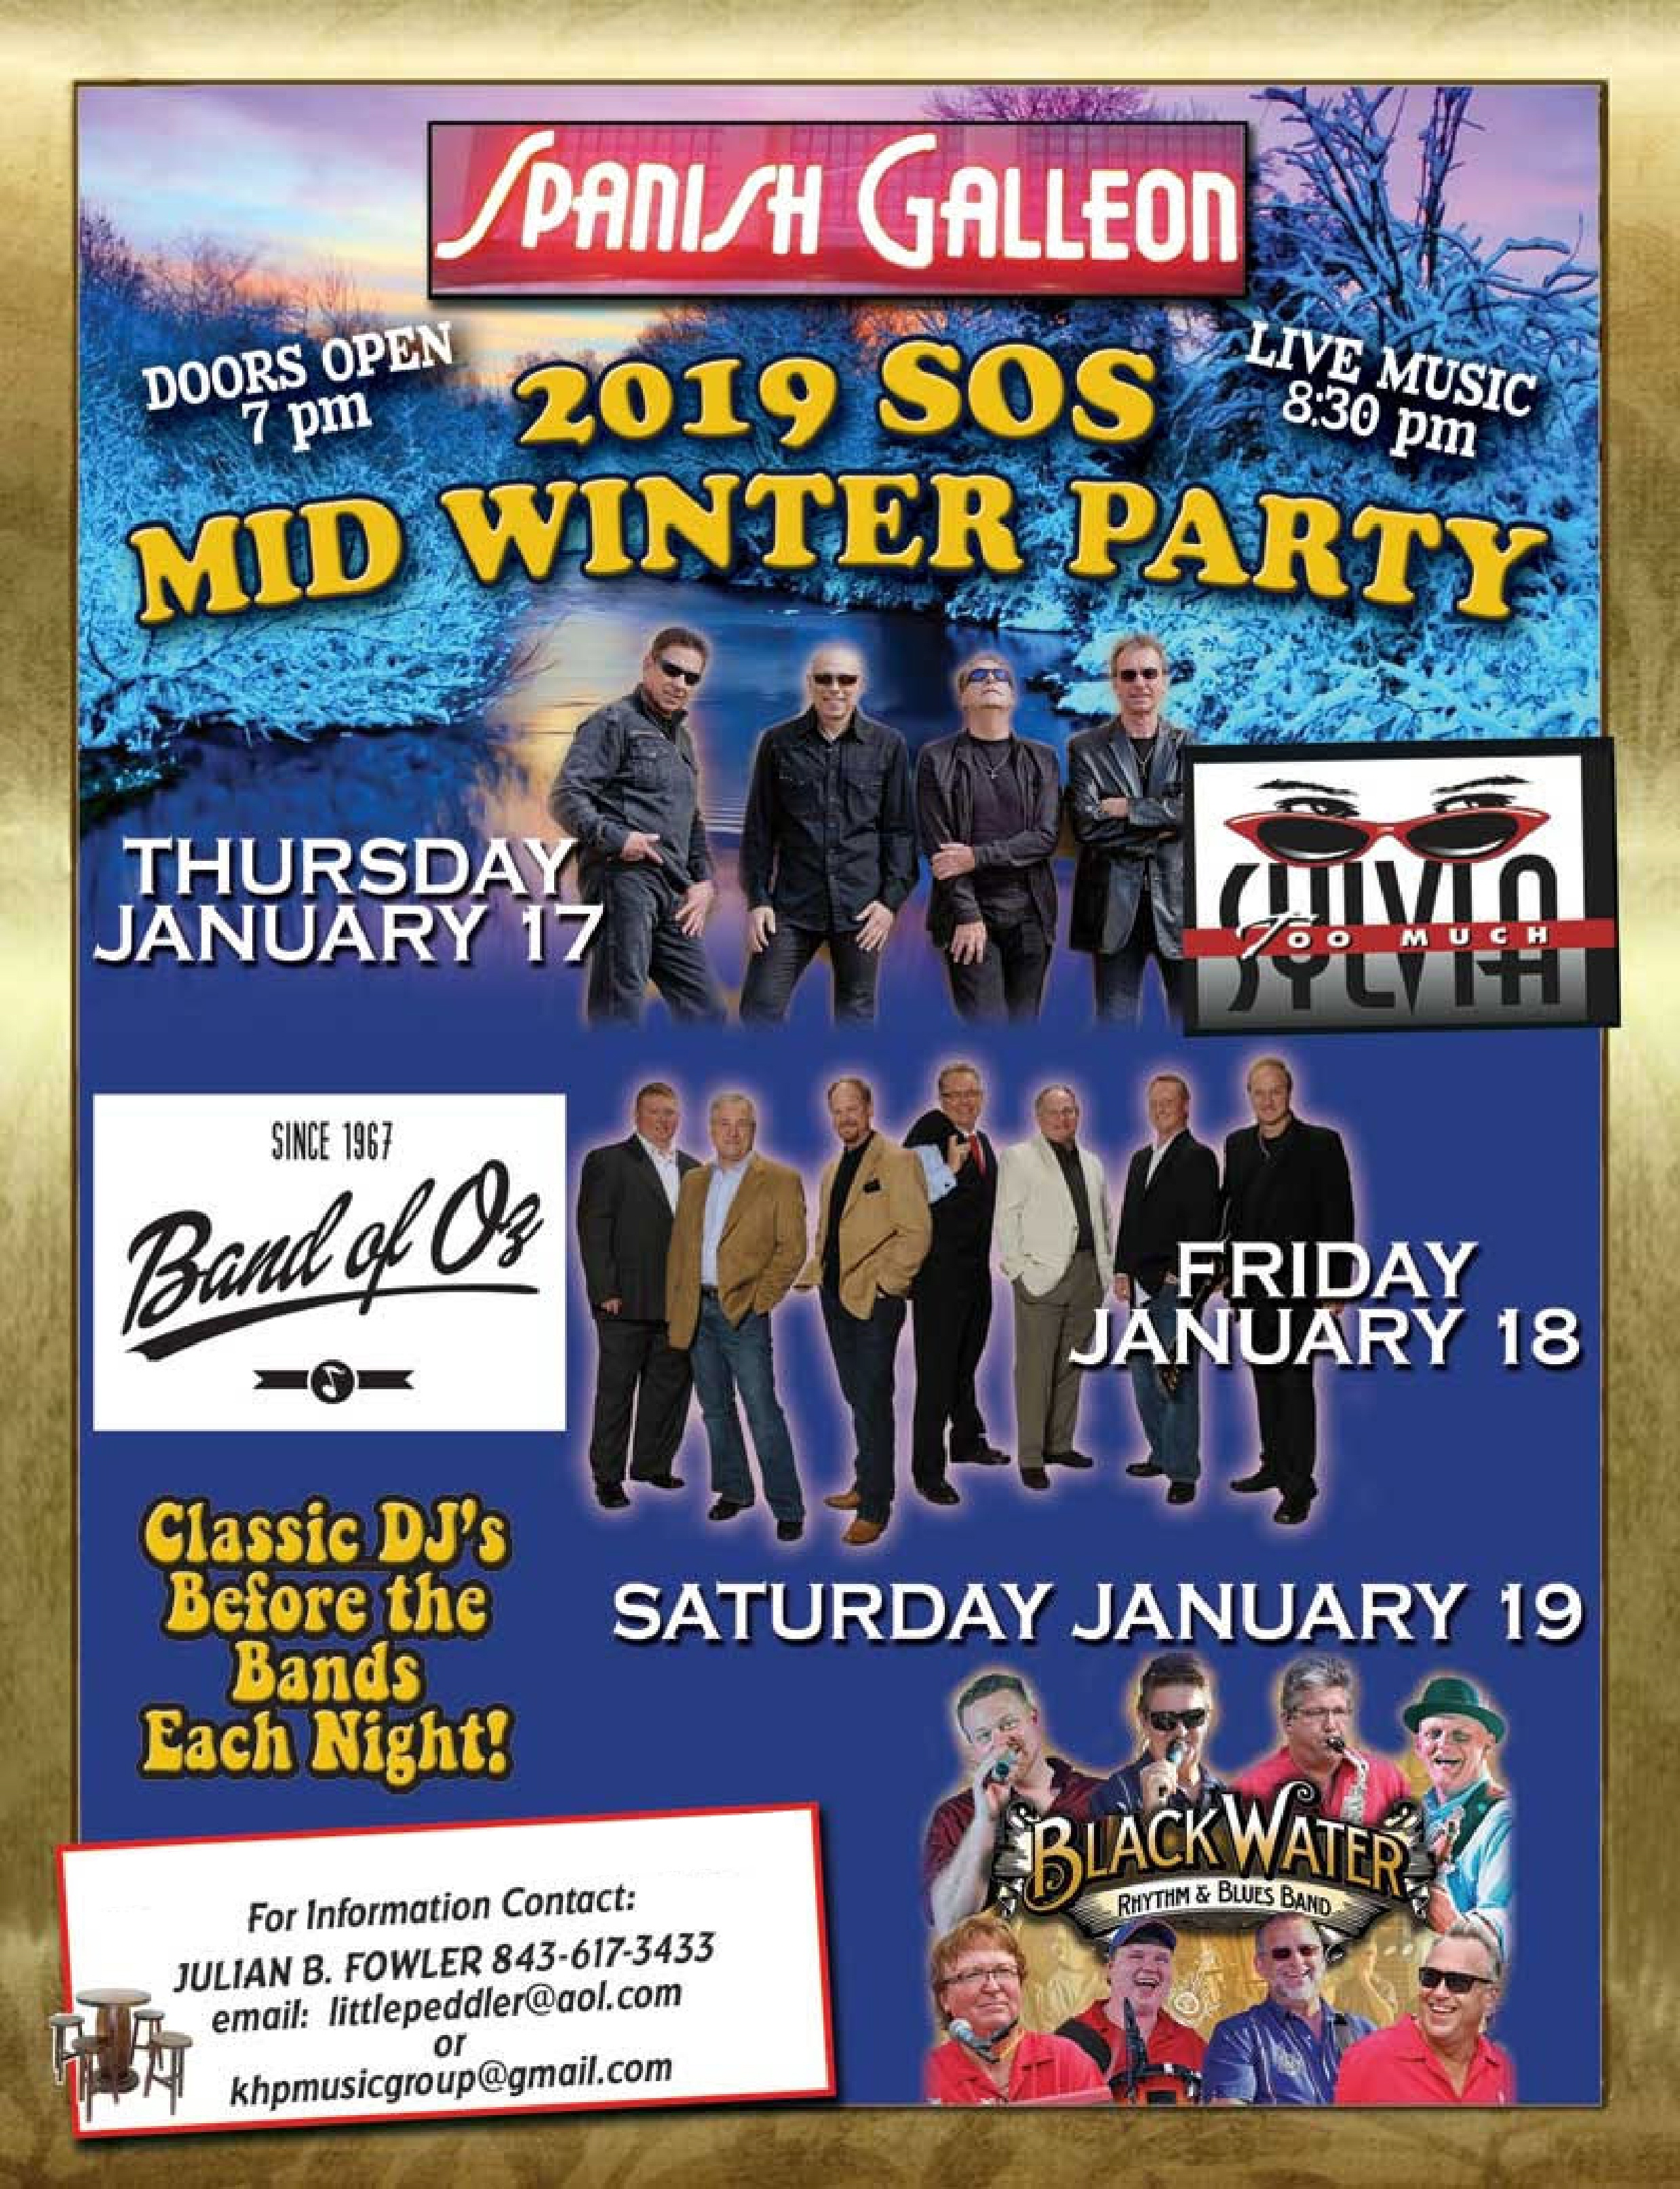 Who is coming to MidWinter SOS? - Surf Countdown - Top Songs